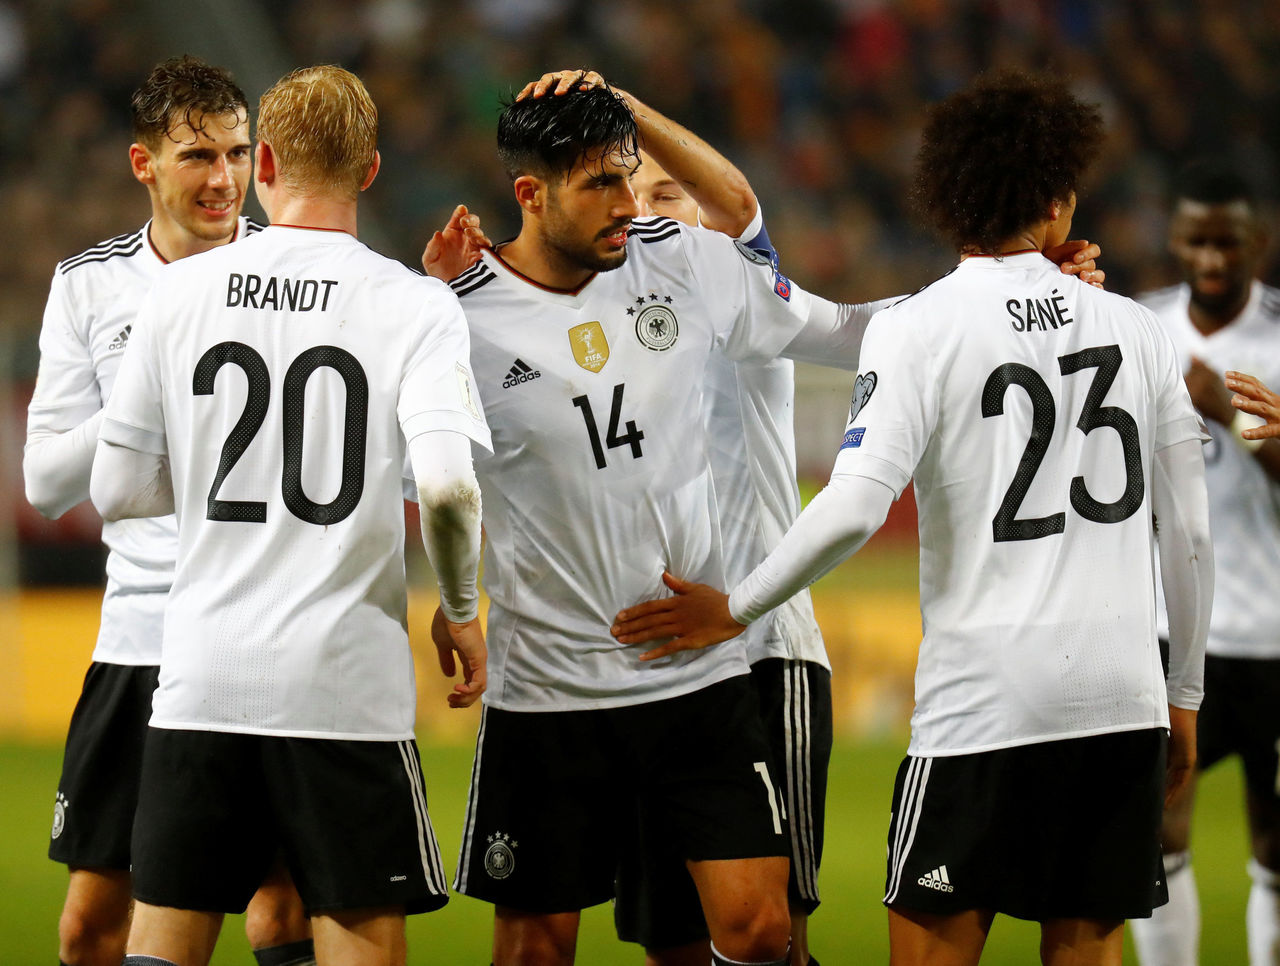 Cropped 2017 10 08t202909z 852760156 rc1197f72f00 rtrmadp 3 soccer worldcup ger aze